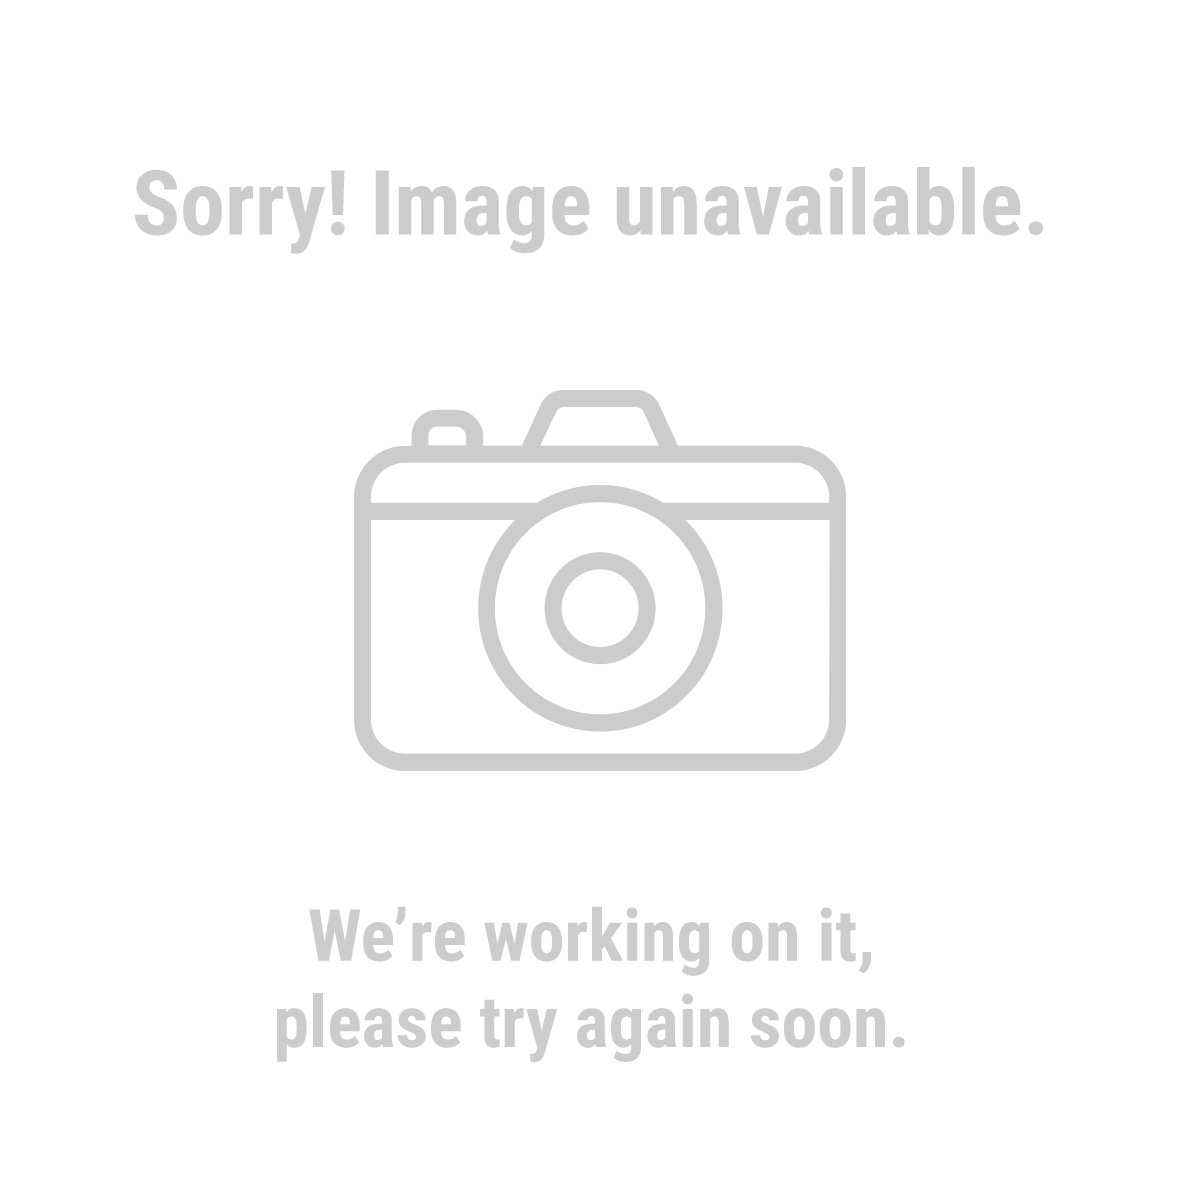 Pittsburgh Automotive 97959 11 Piece Noid Light and IAC Tester Set